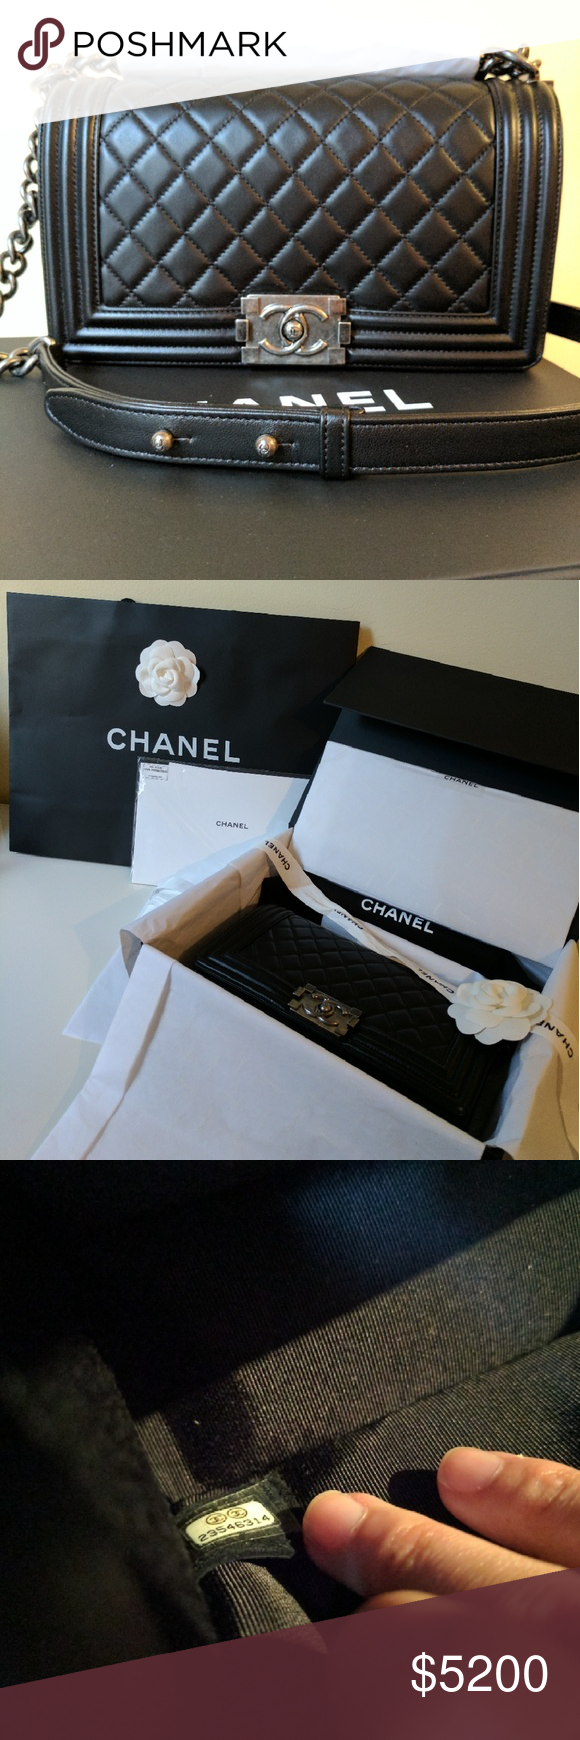 """Chanel Le Boy Old Medium Brand New, Chanel Le Boy Old Medium Bag with Ruthenium hardware. Calfskin. Dimensions"""" 9.8"""" X 3.1"""" X 5.7""""  Single chain drop 20"""", Double chain drop 11"""" Purchased in France November 2016.  All packaging included (bag with camellia, box, ribbons with camellia, authenticity card and care manual still in the plastic packaging untouched, and dust bag). Opening it will give you the satisfying experience of unboxing Chanel's new IT bag.  No trades. P and P negotiable. Local…"""